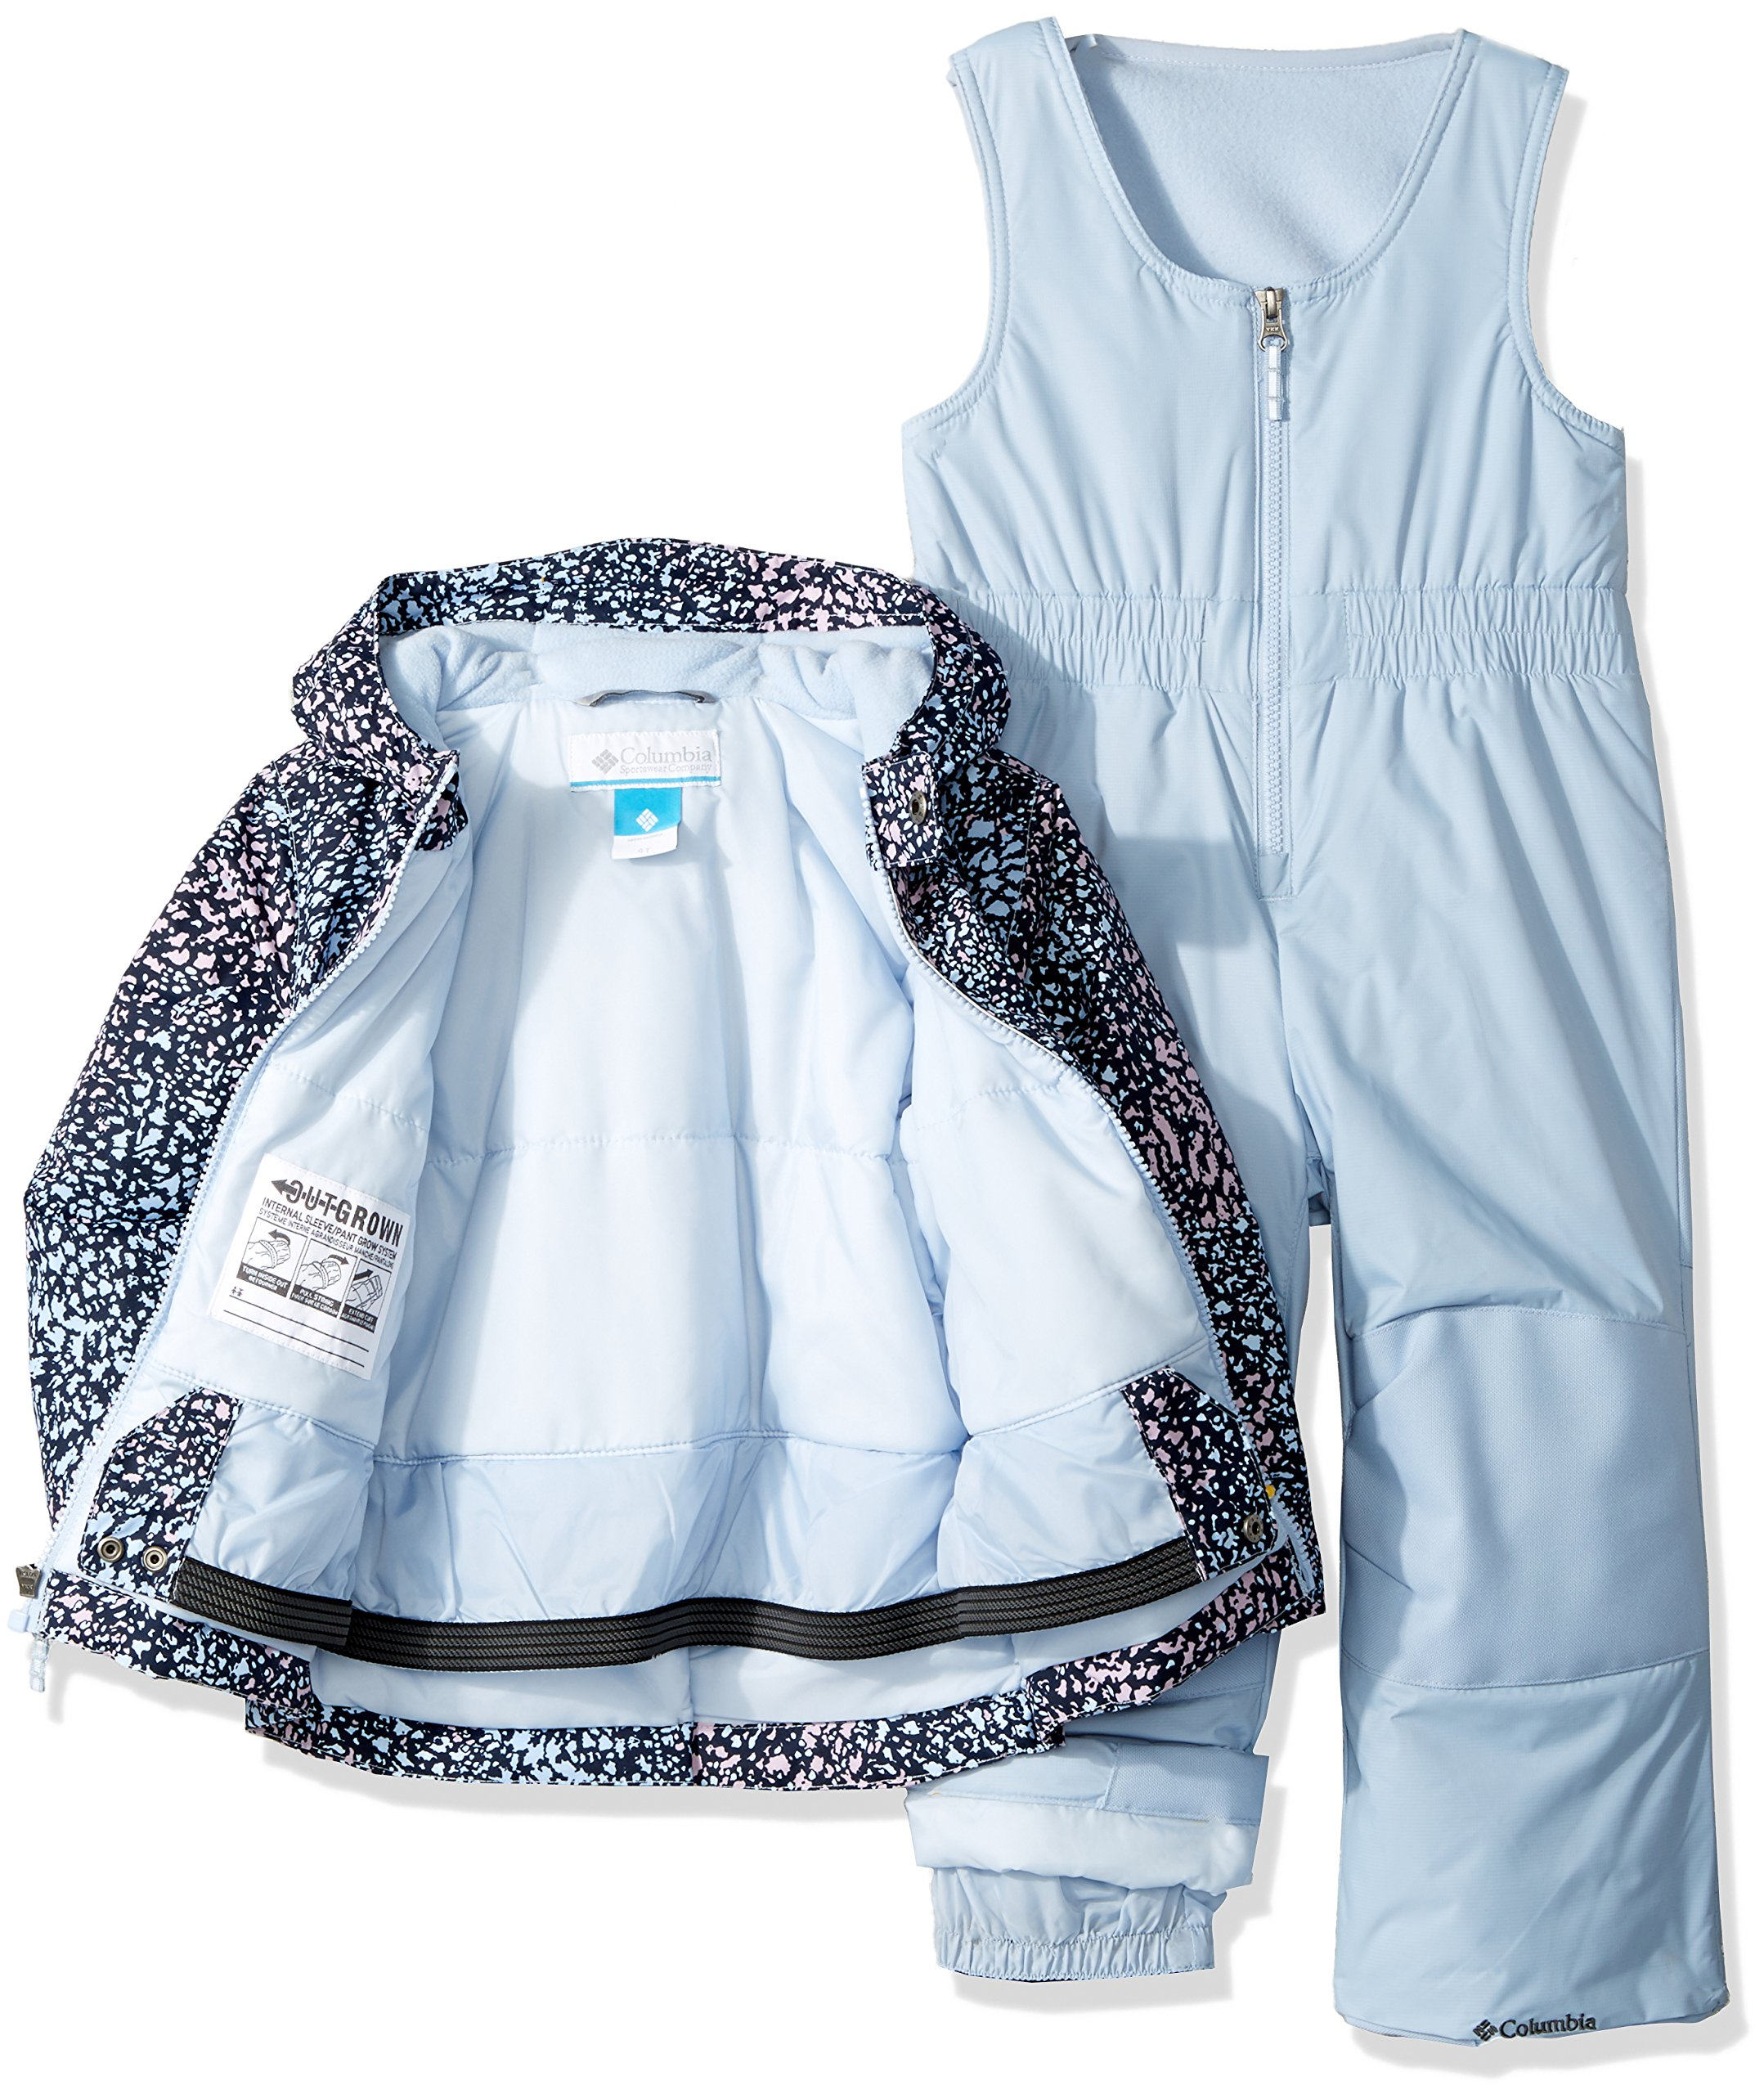 872d9a1c8 Columbia Girls' Toddler Frosty Slope Set, Faded Sky Snow Splatter, 4T -  1624591-467-Fdd Sky Snw Spltr-4T < Snow Wear < Clothing, Shoes & Jewelry -  tibs